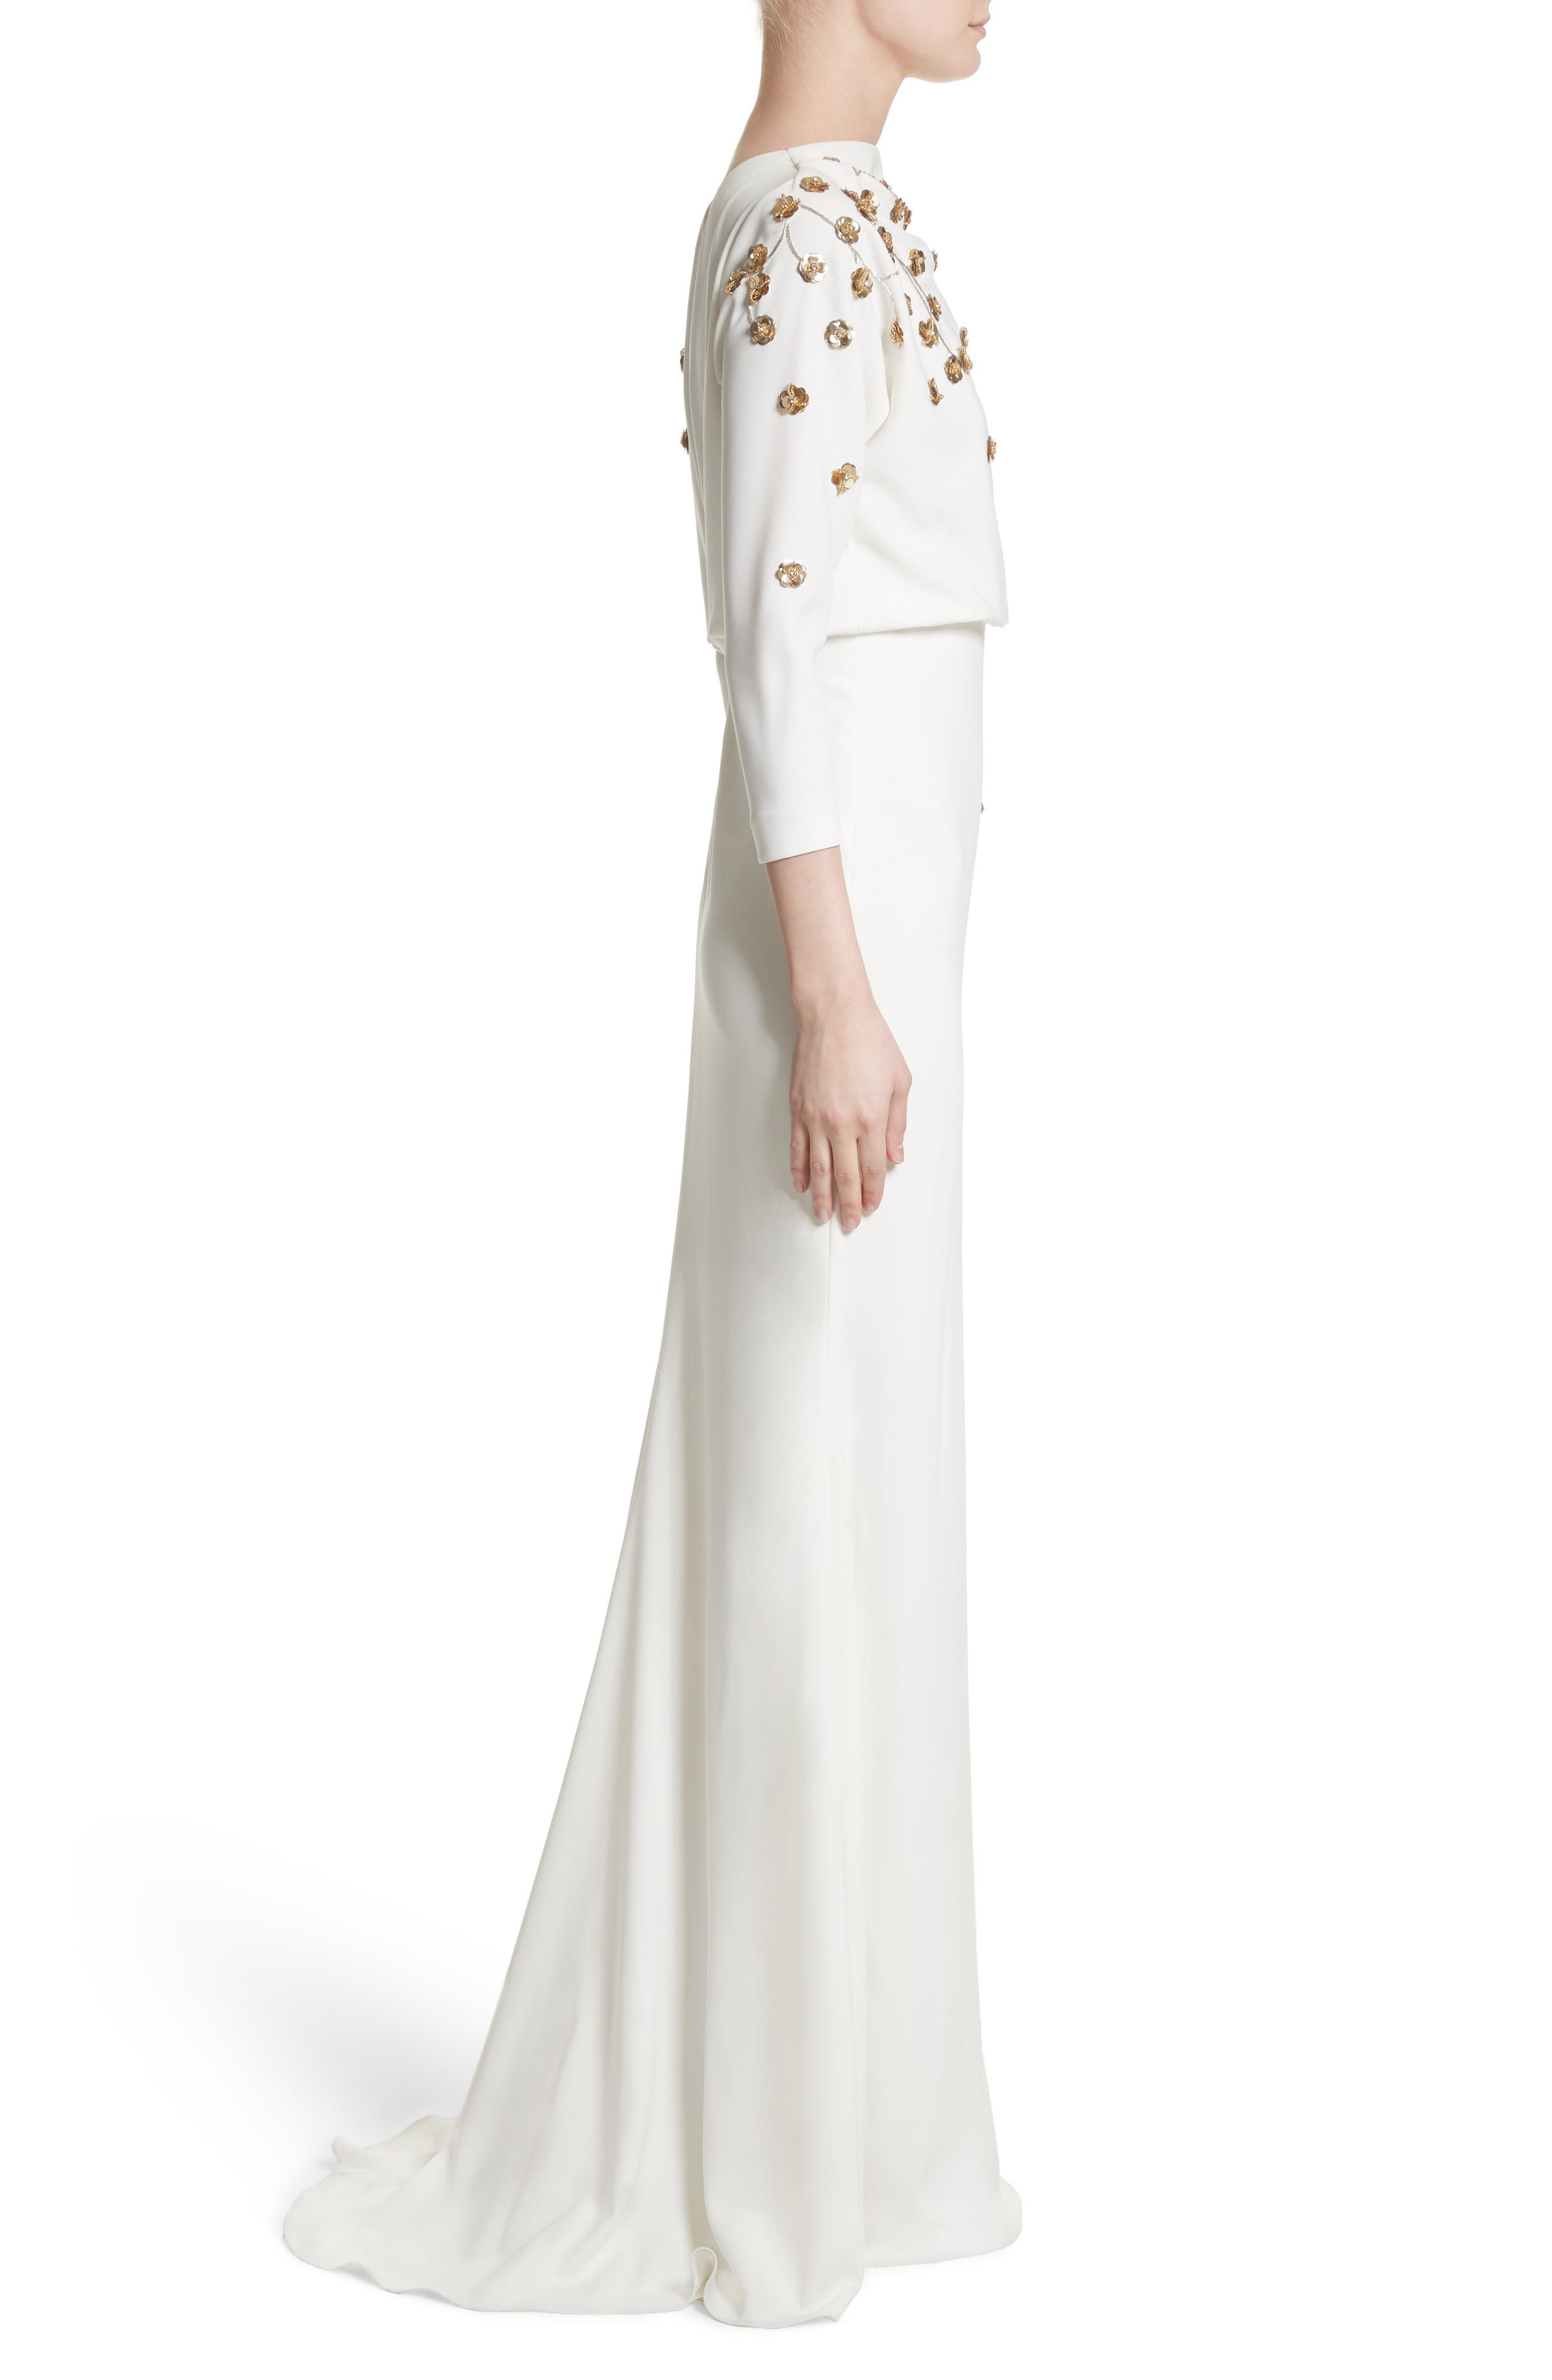 Badgley Mischka Couture Floral Embellished Crepe Gown,                             Alternate thumbnail 4, color,                             Light Ivory